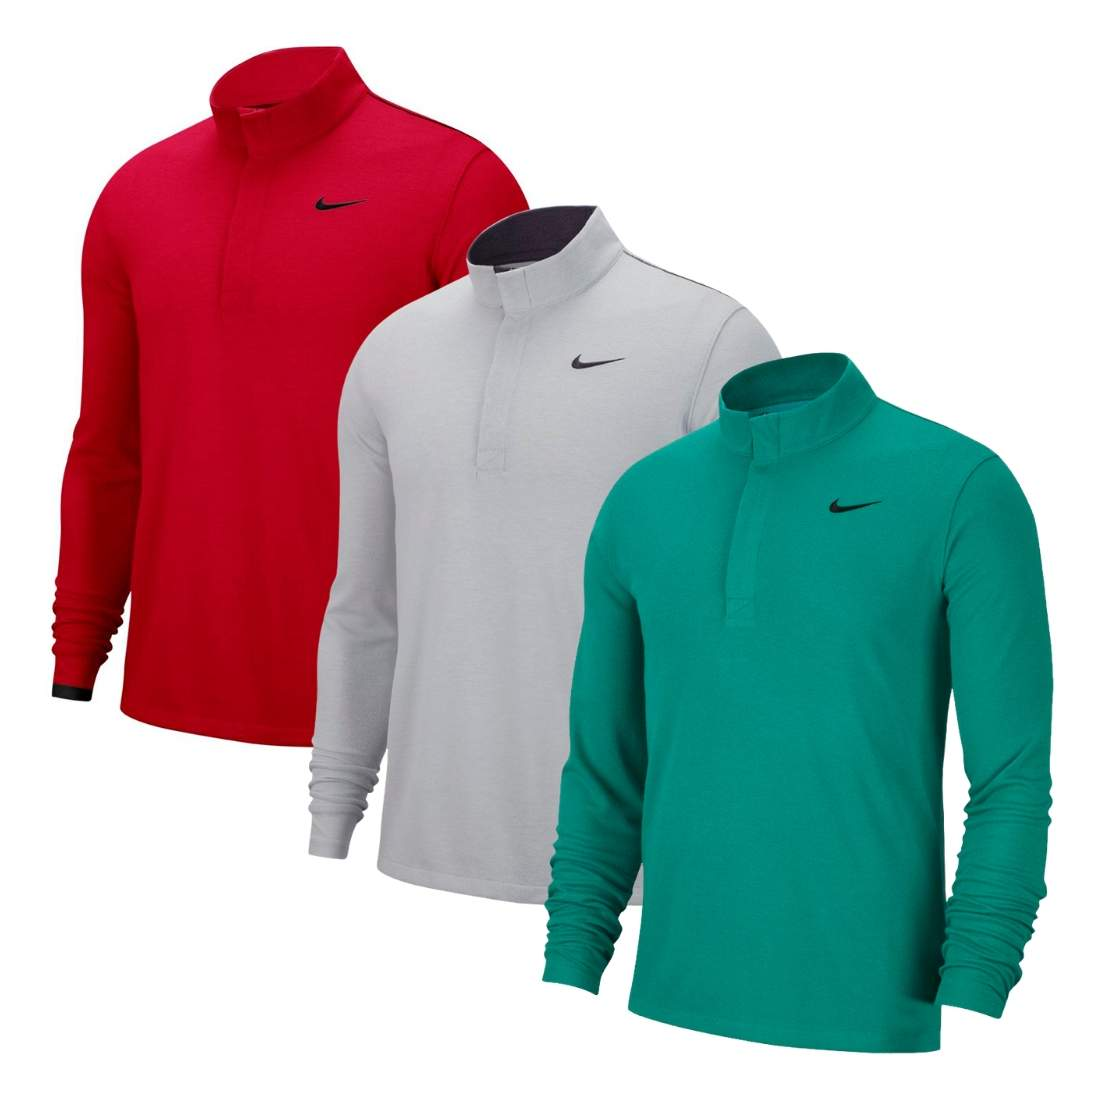 Nike Men's 2020 Dri-Fit Victory 1/2 Zip Pullover